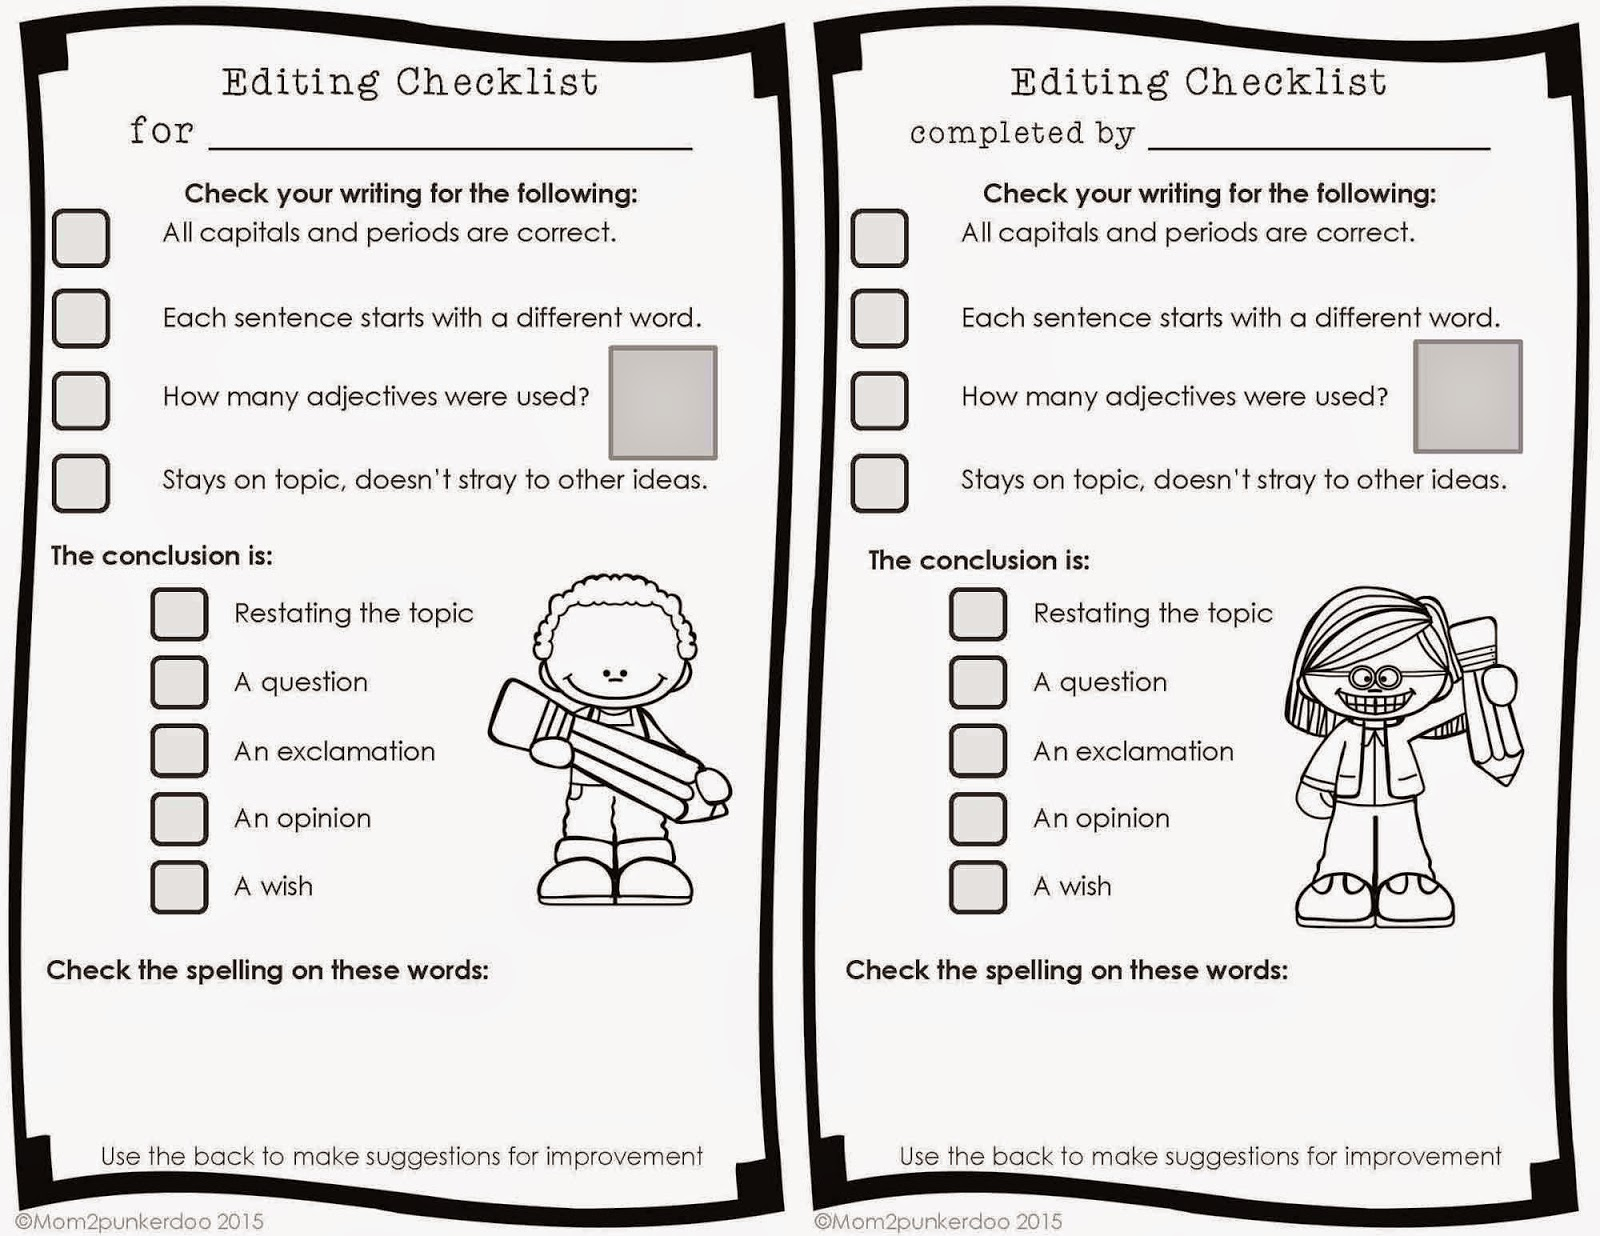 Free editing checklists